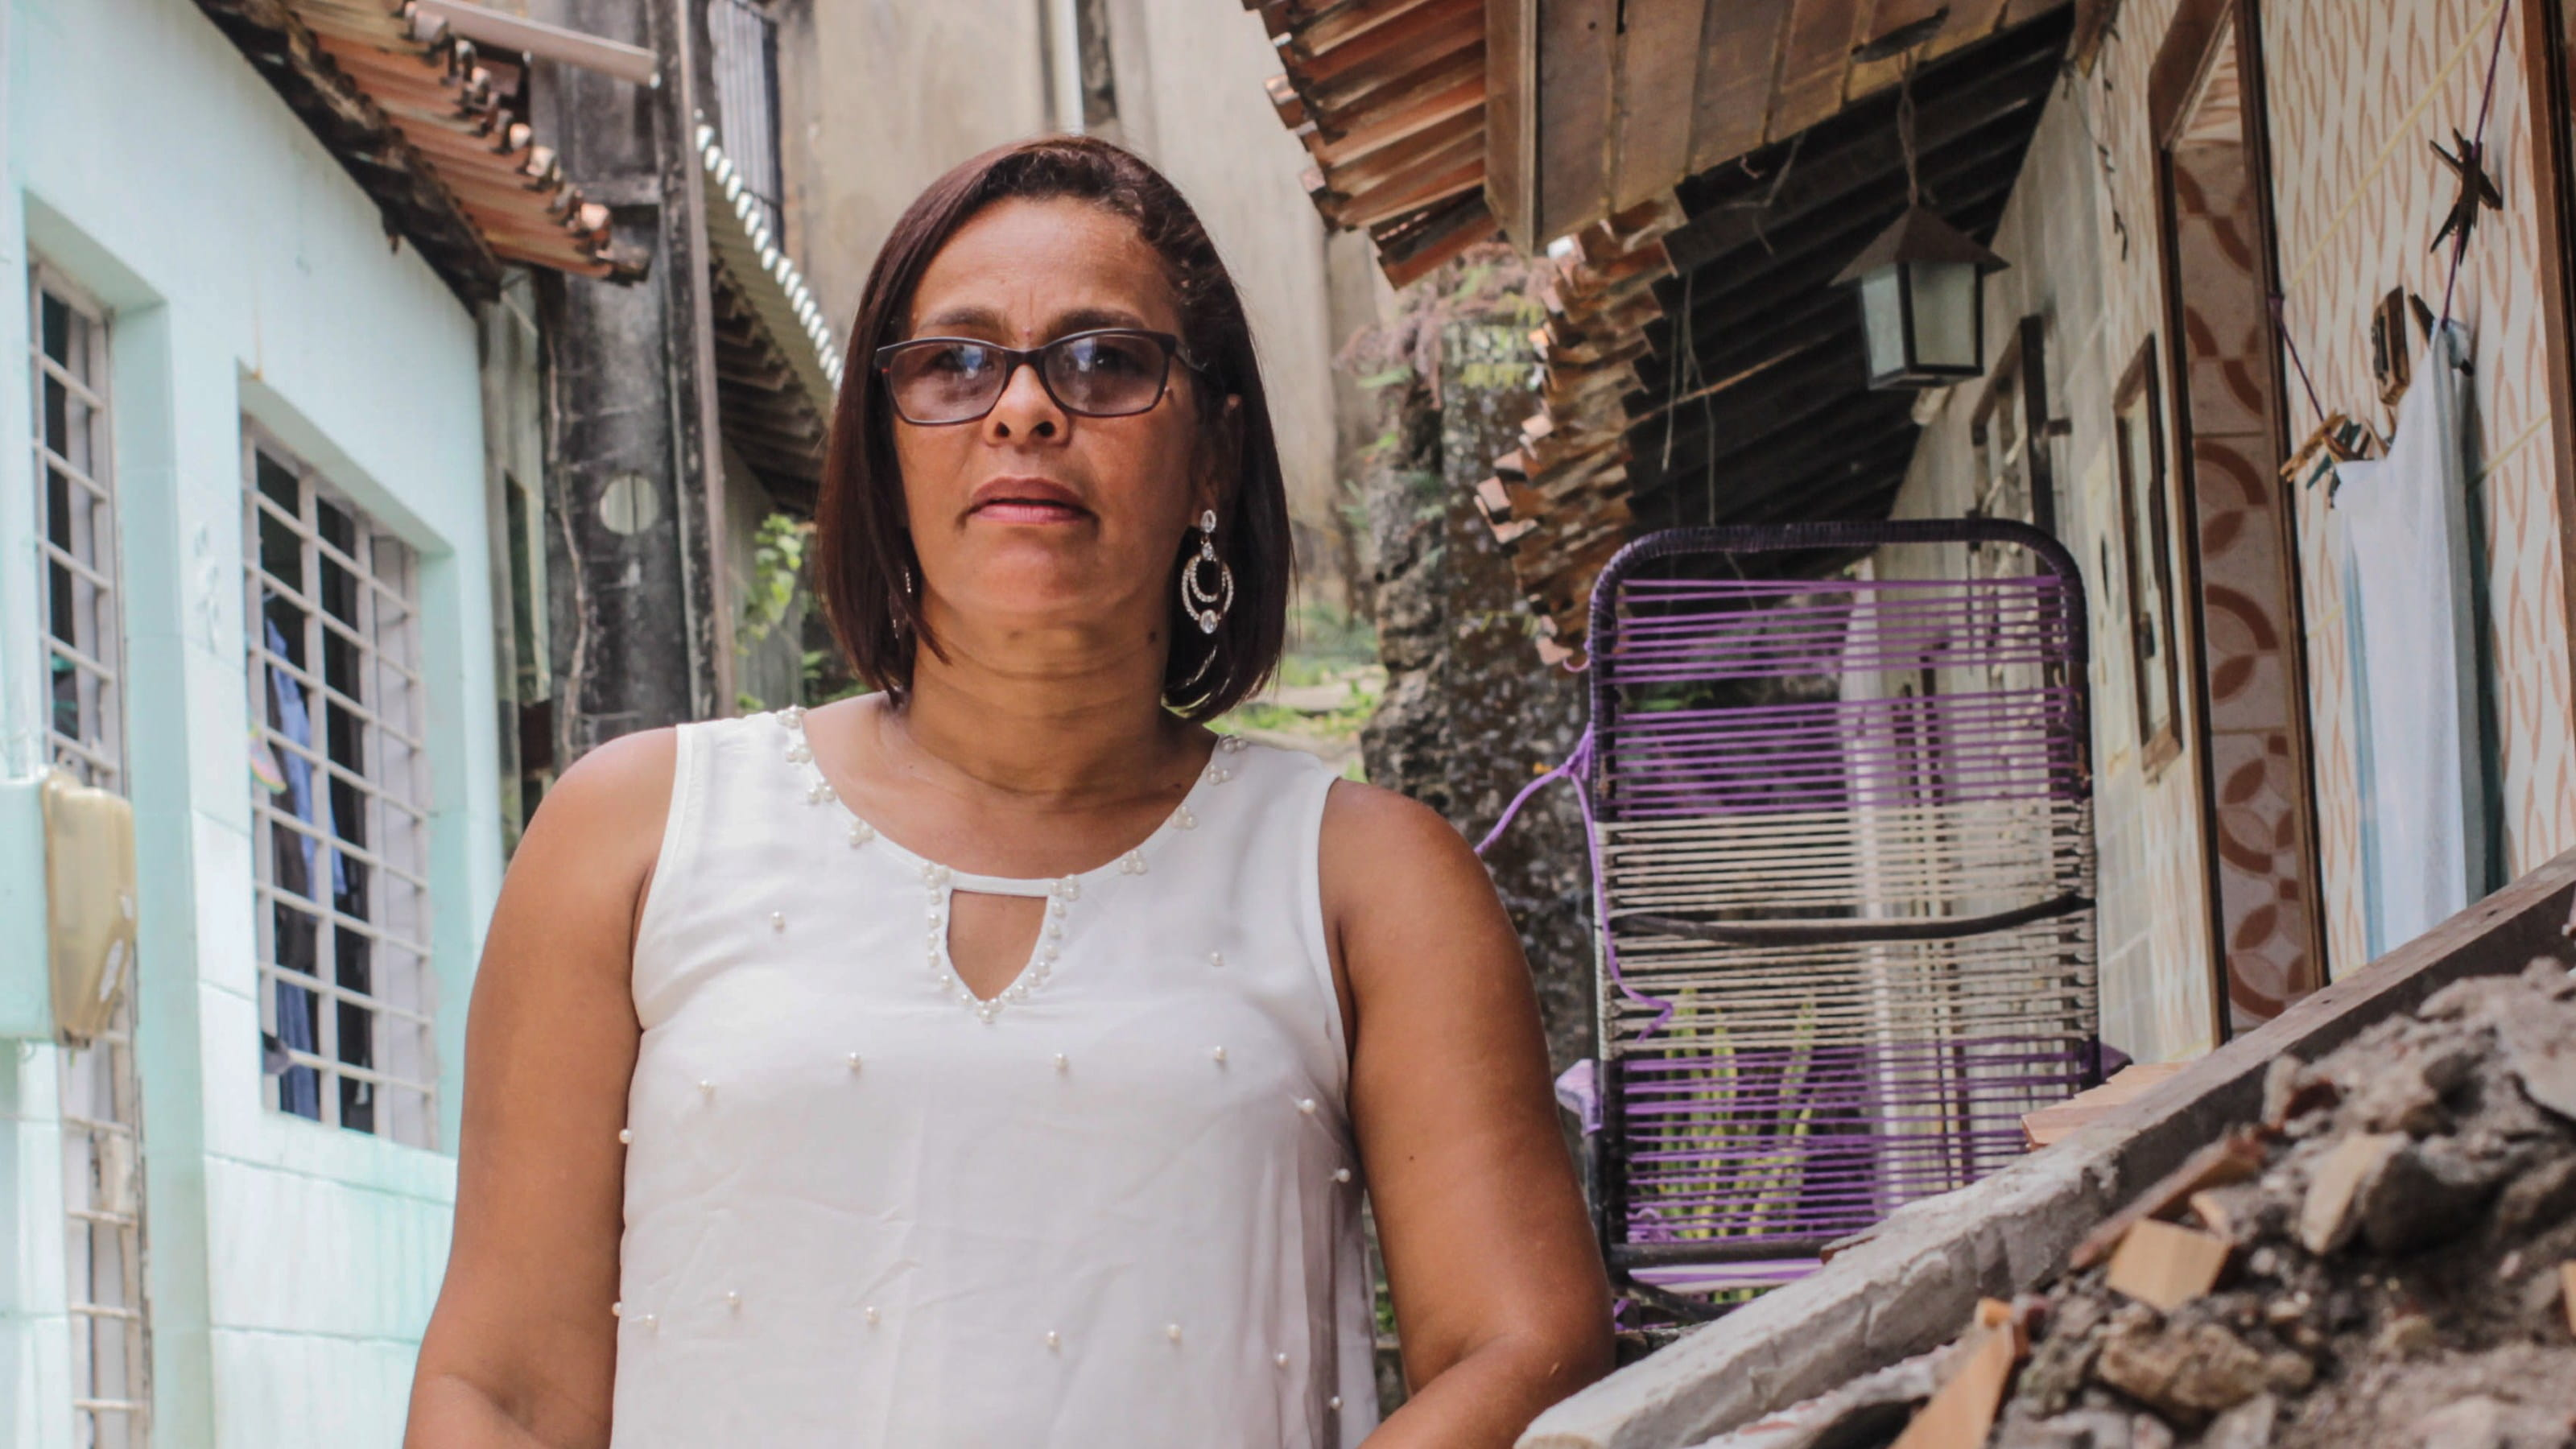 Sandra, an activist in Brazil who speaks out about the issue of plastic polution. Photo: Moises Lucas Lopes da Silva/Tearfund